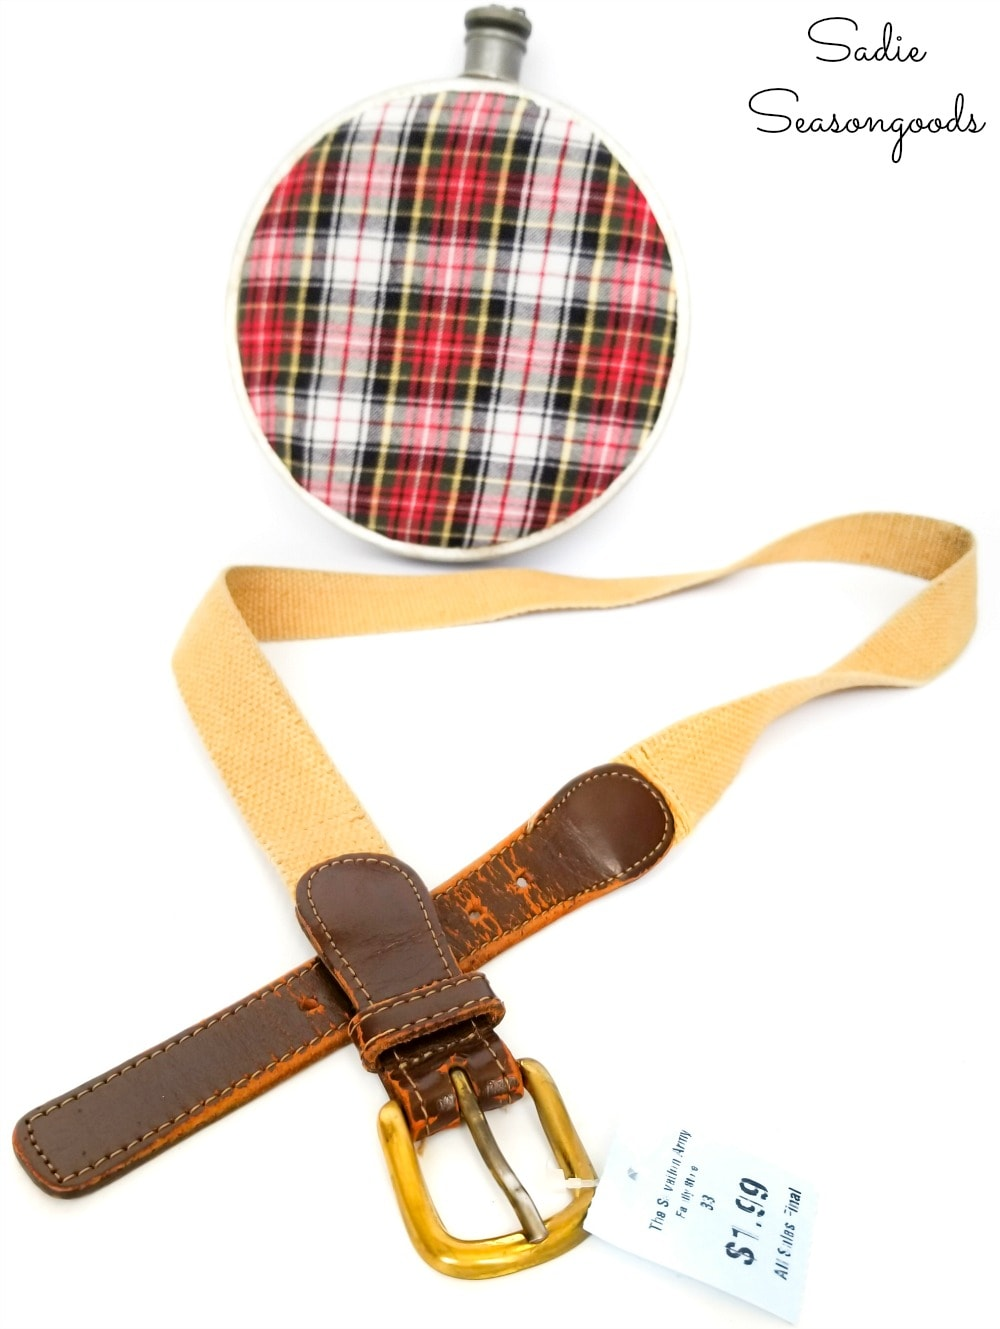 Adding a strap to a vintage canteen with a woven belt